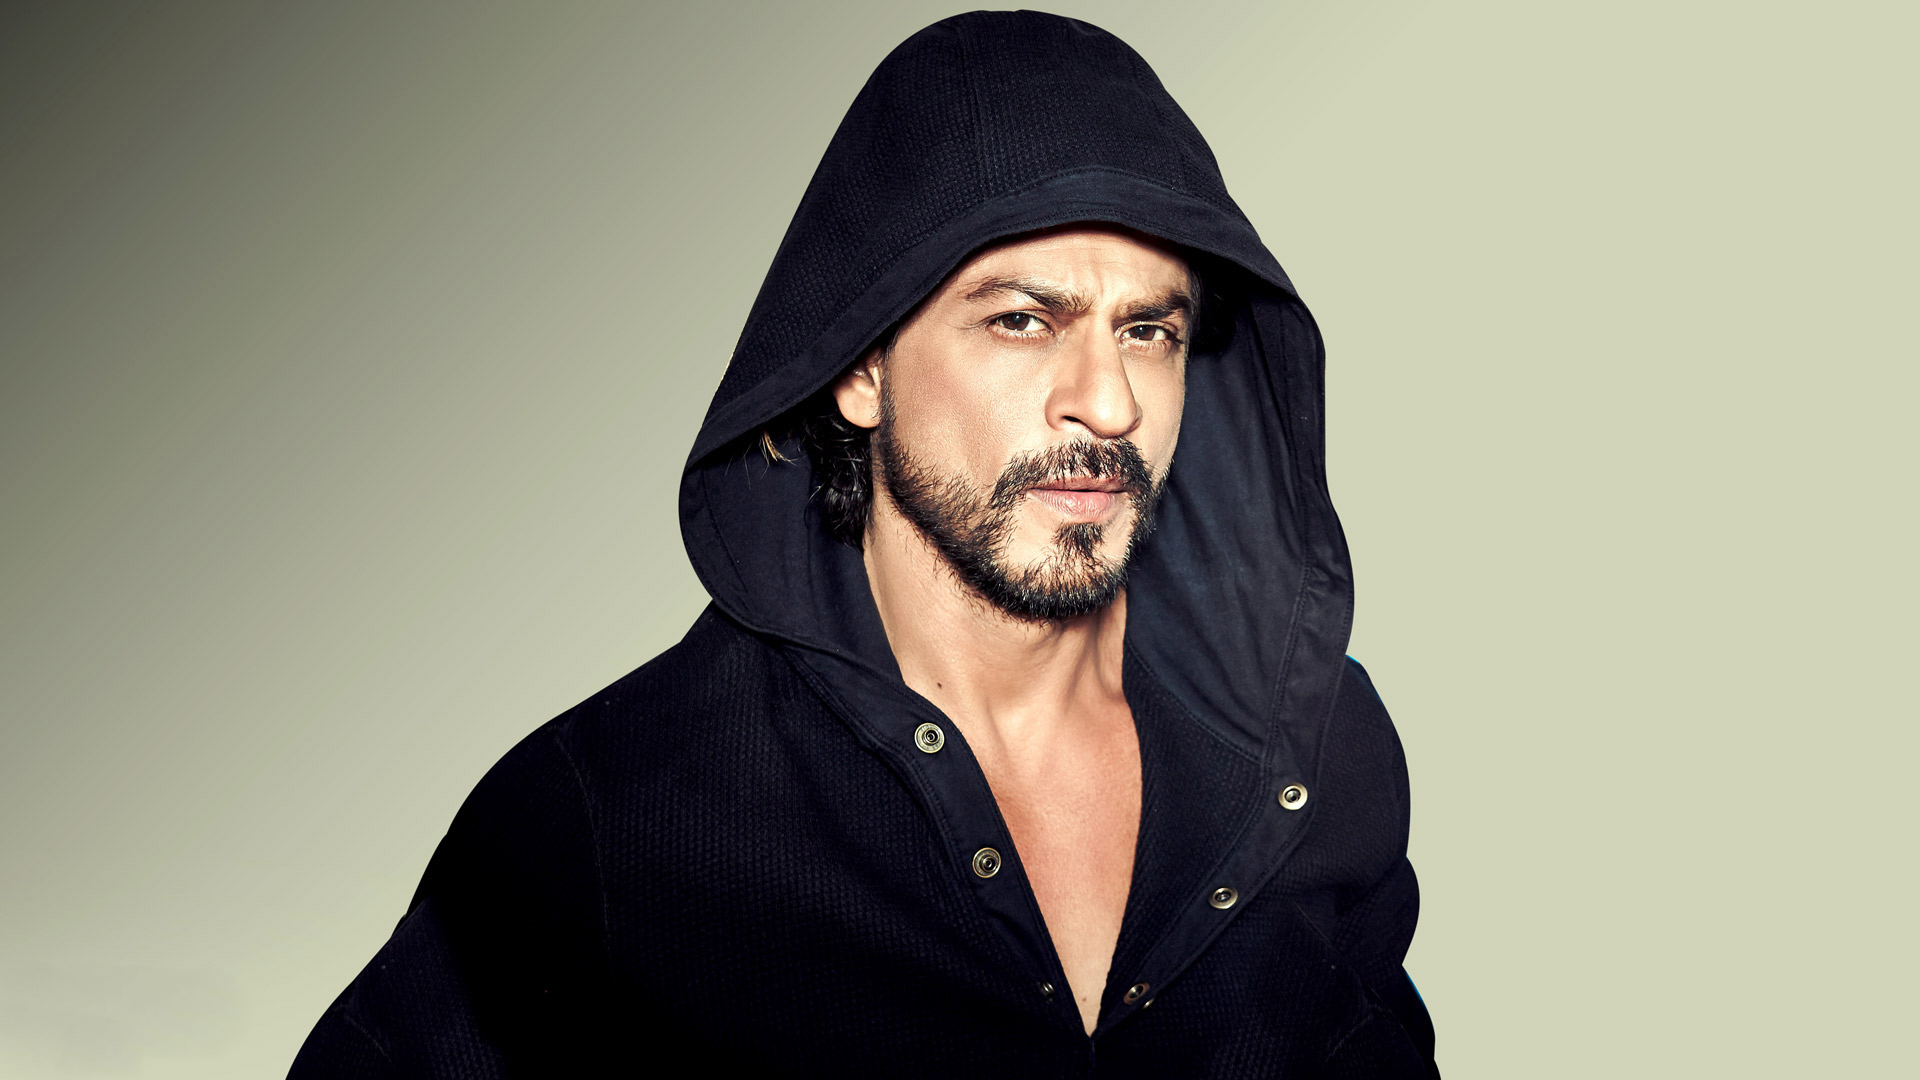 shah rukh khan hd wallpaper | background image | 1920x1080 | id